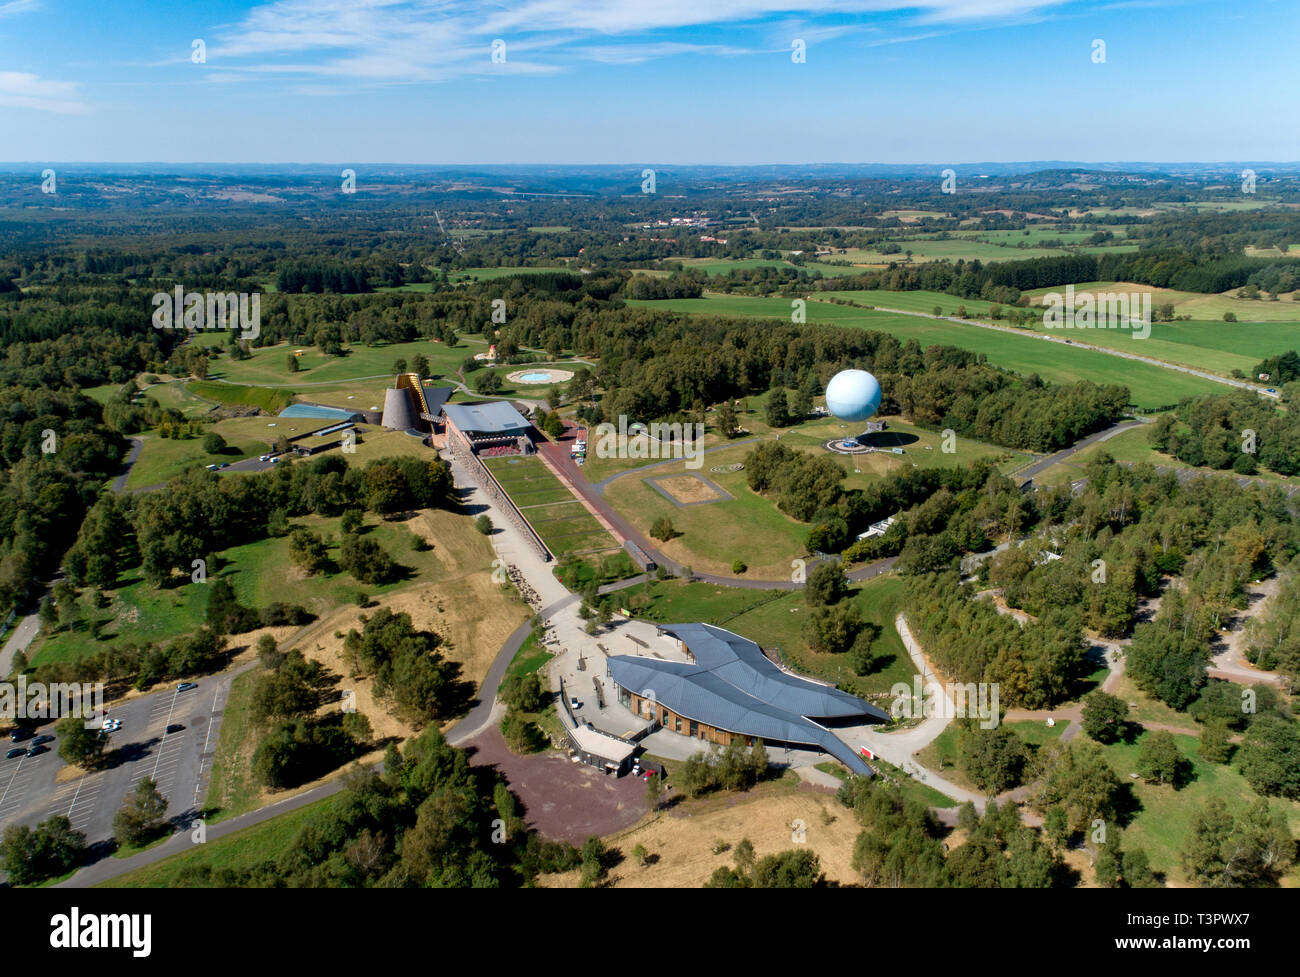 Aerial vie of Vulcania, the ' European Park of Volcanism', in Saint-Ours-les-Roches (central France). Vulcania is an educational Amusement park and mu - Stock Image